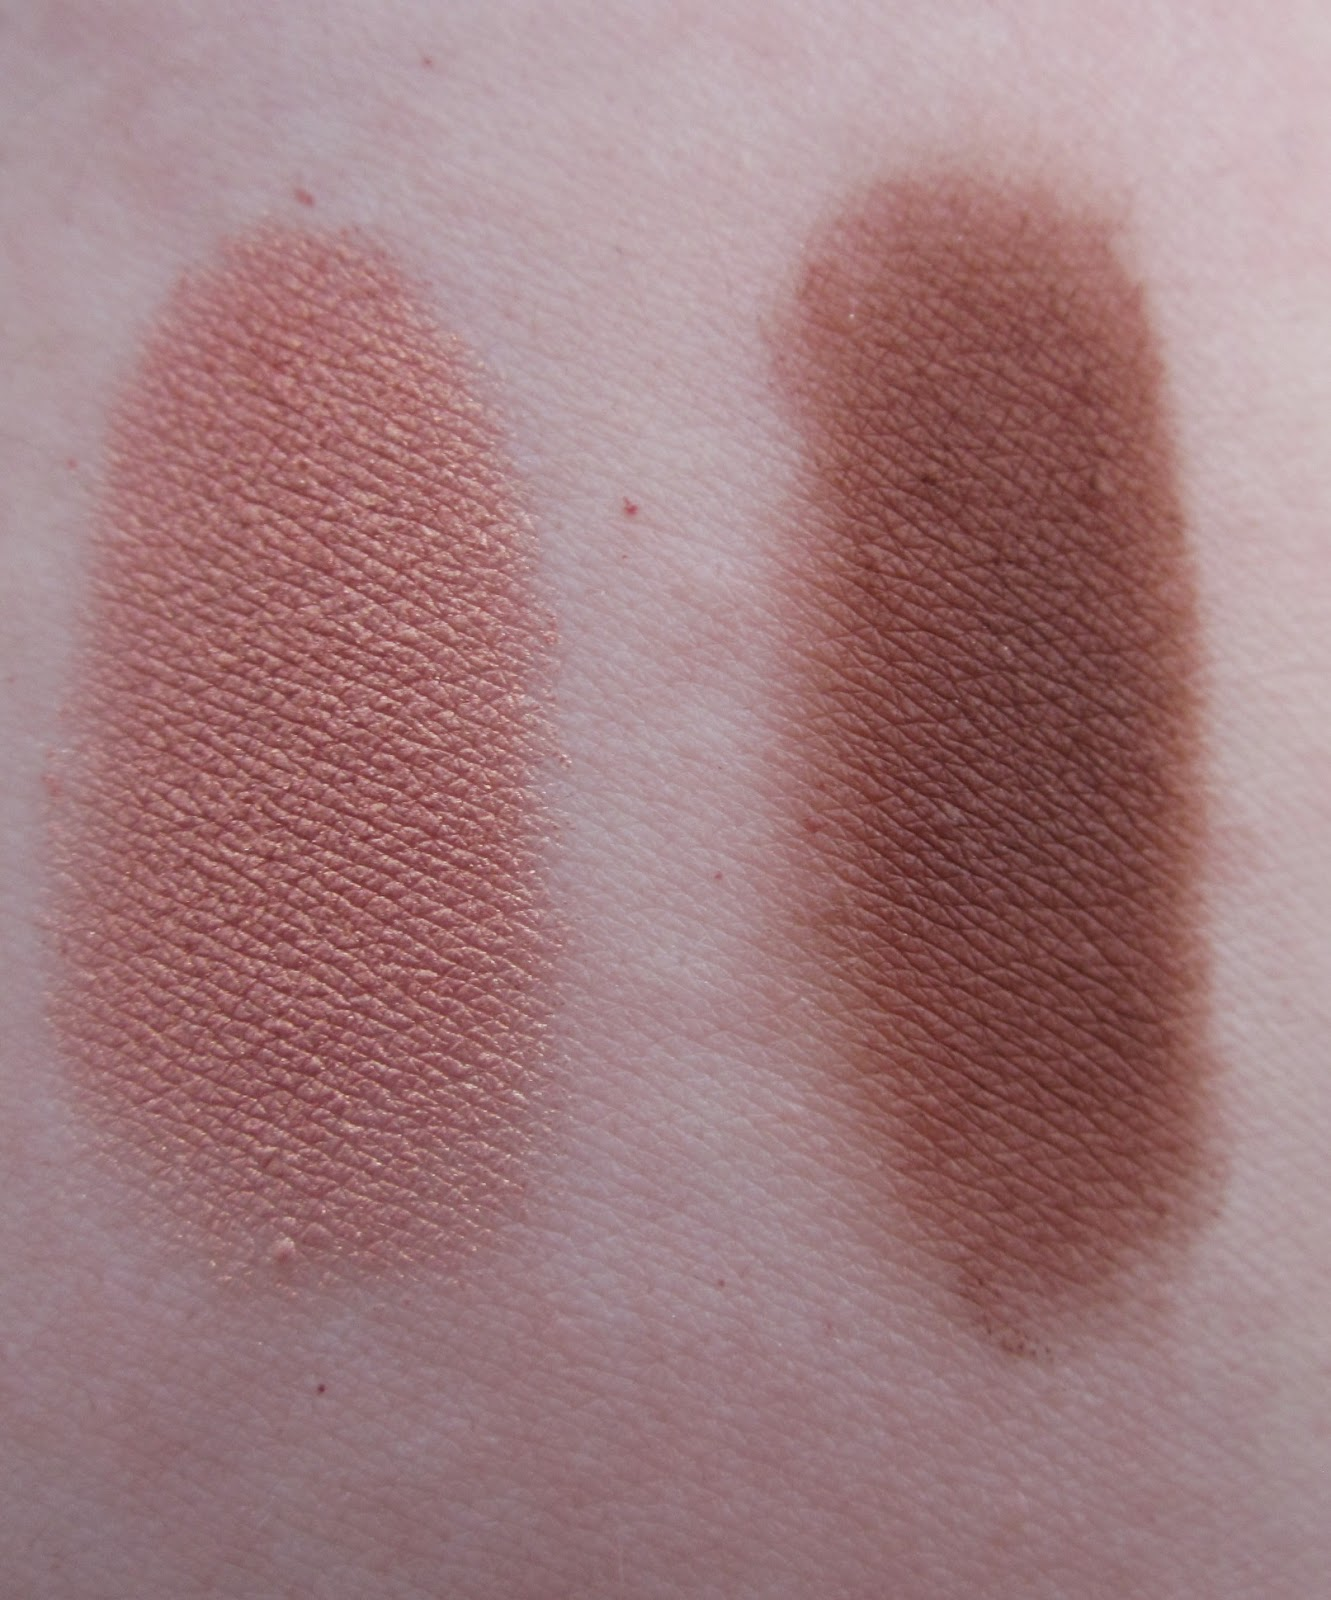 Makeup Geek Cosmopolitan Cocoa Bear - The Beauty Puff